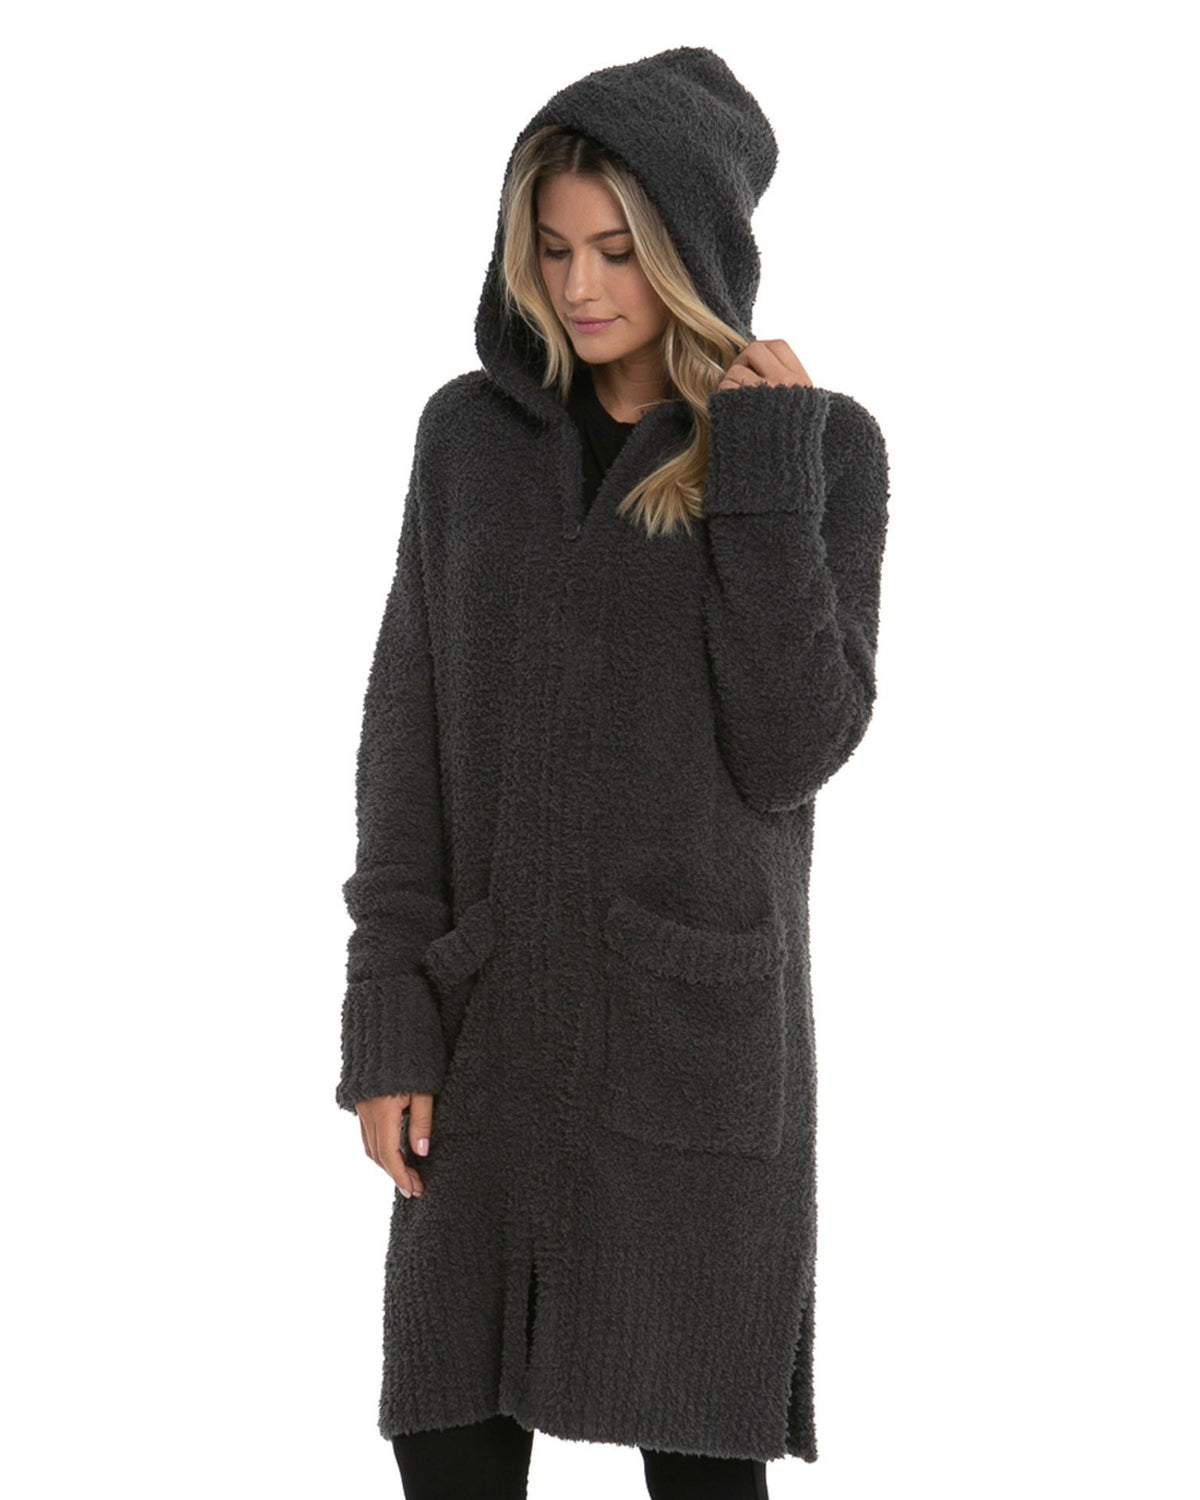 Barefoot Dreams Clothing Carbon / XS Cozychic Nor-Cal Coat